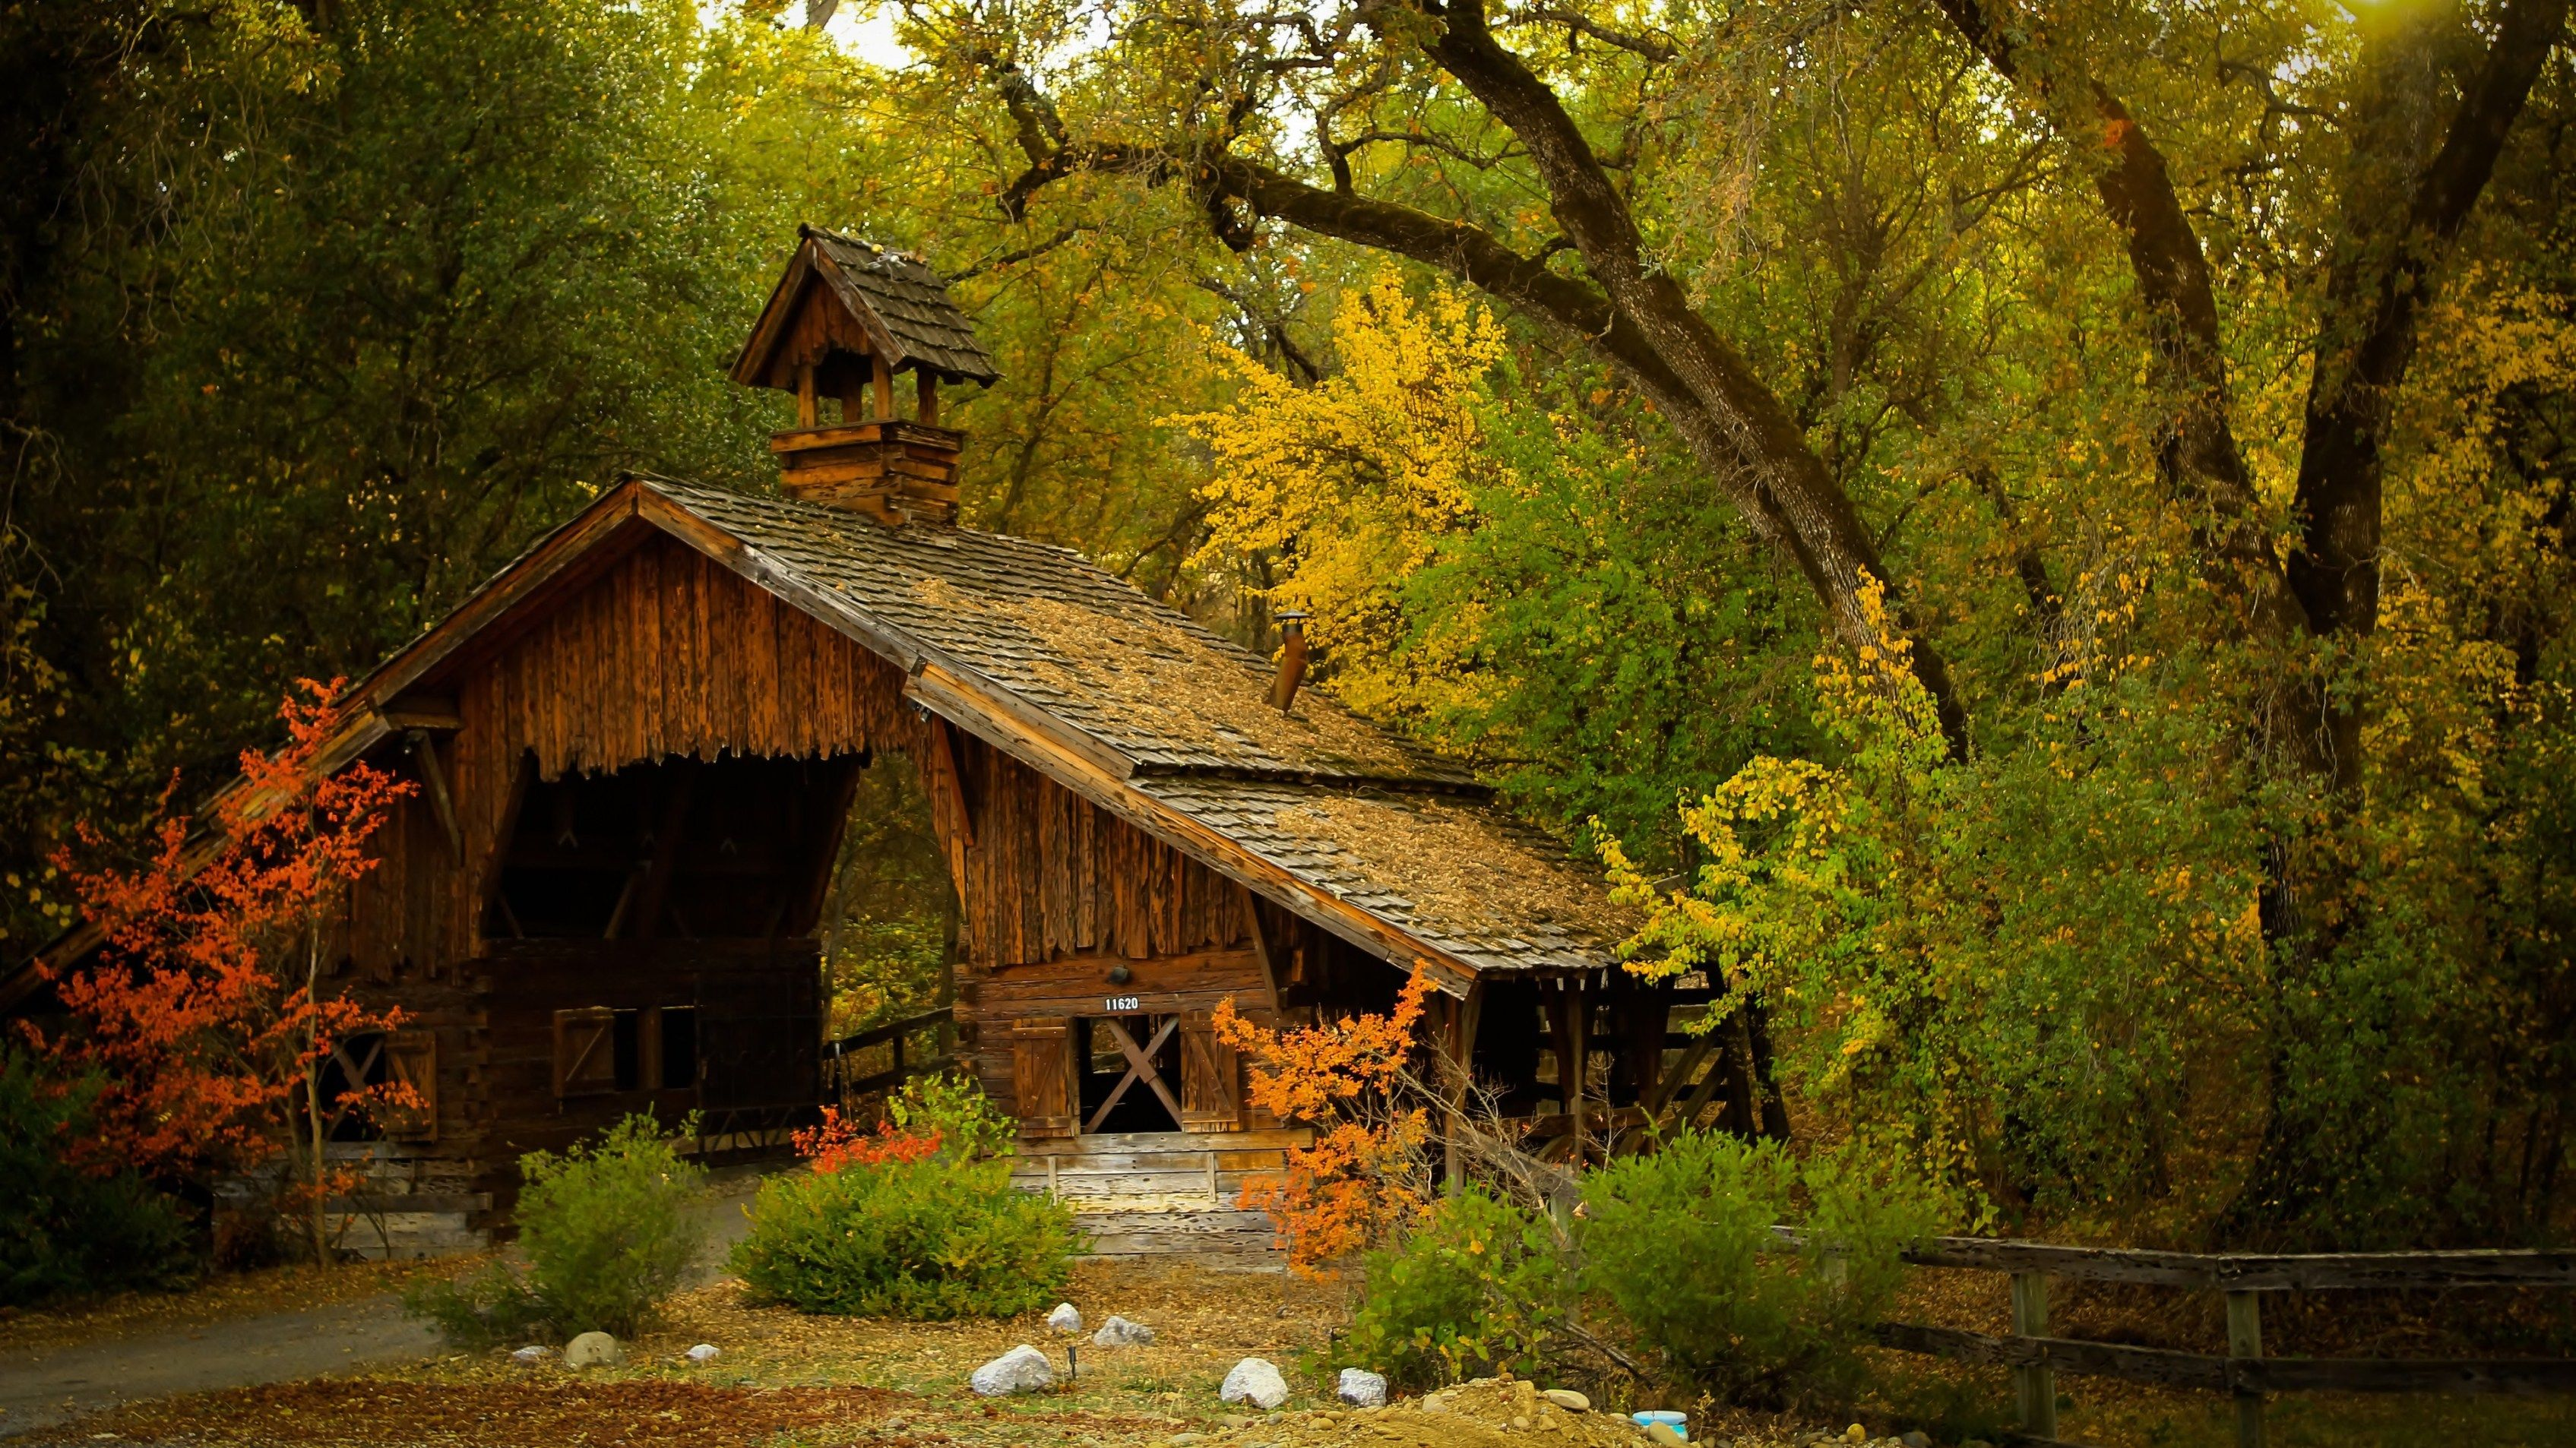 Fondos De Pantalla Paisajes 4k Ultra Hd Rustic Barn Old Barns House In The Woods